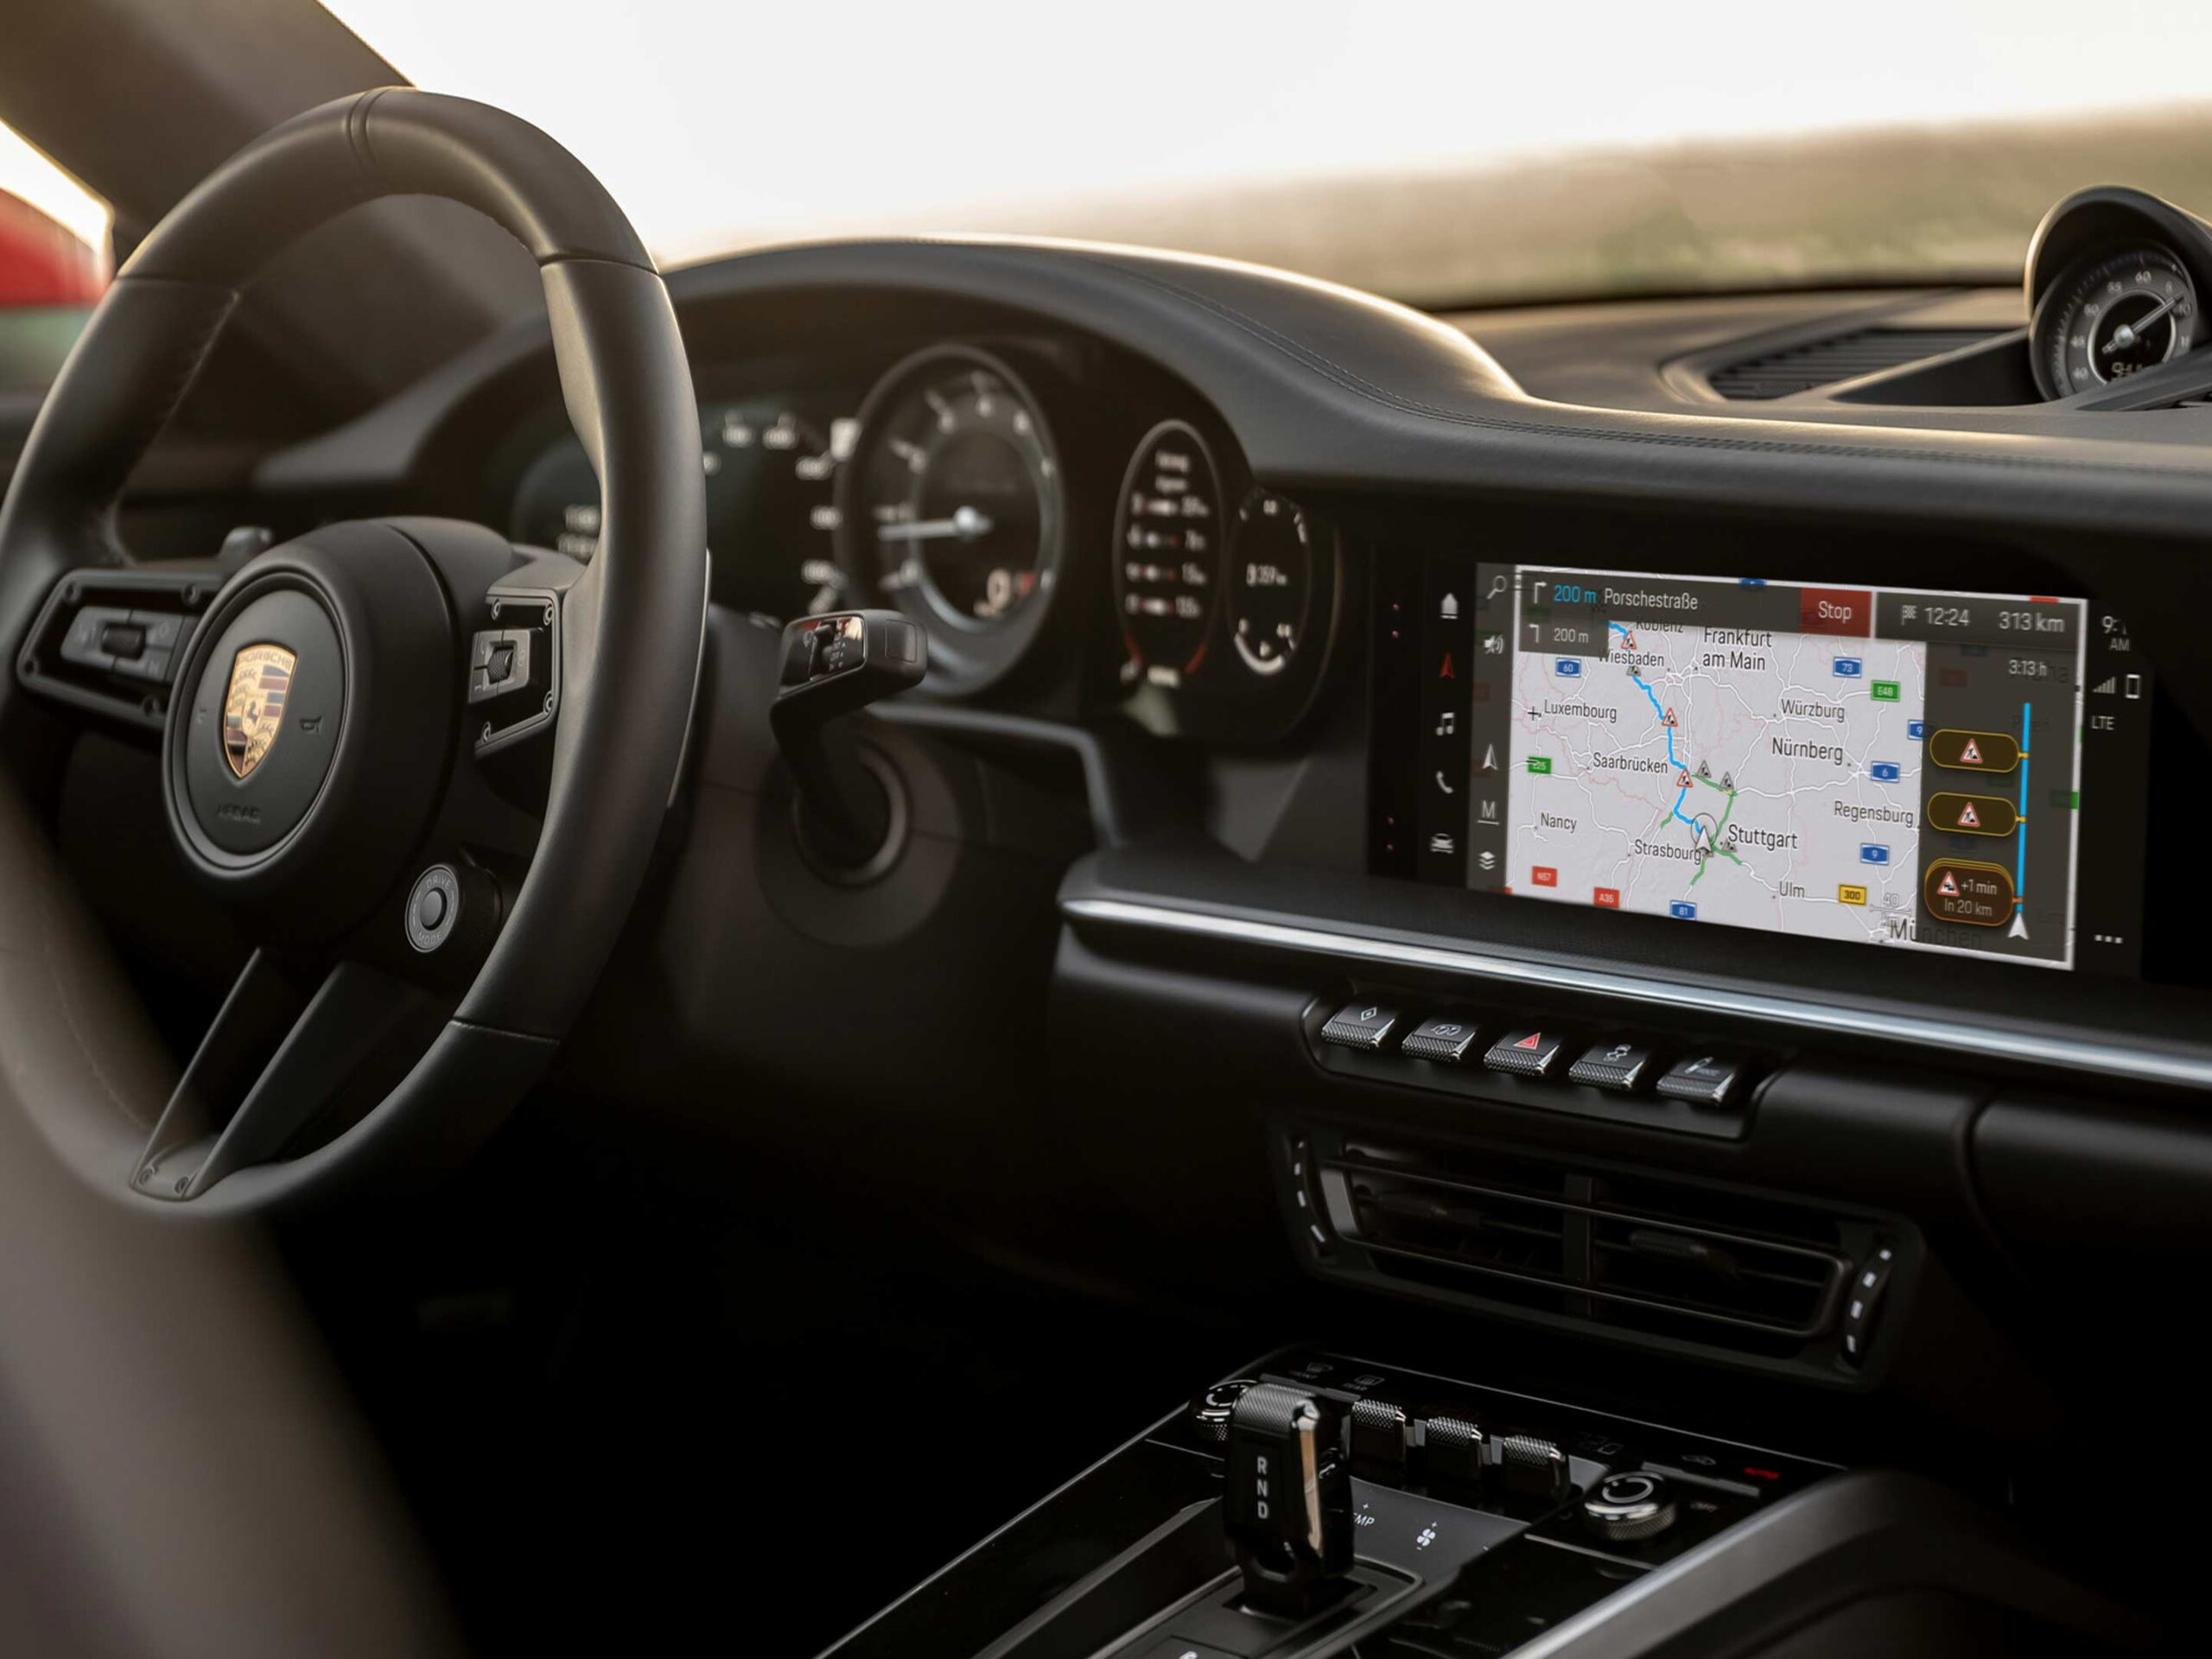 Porsche infotainment update brings Android Auto compatibility and more